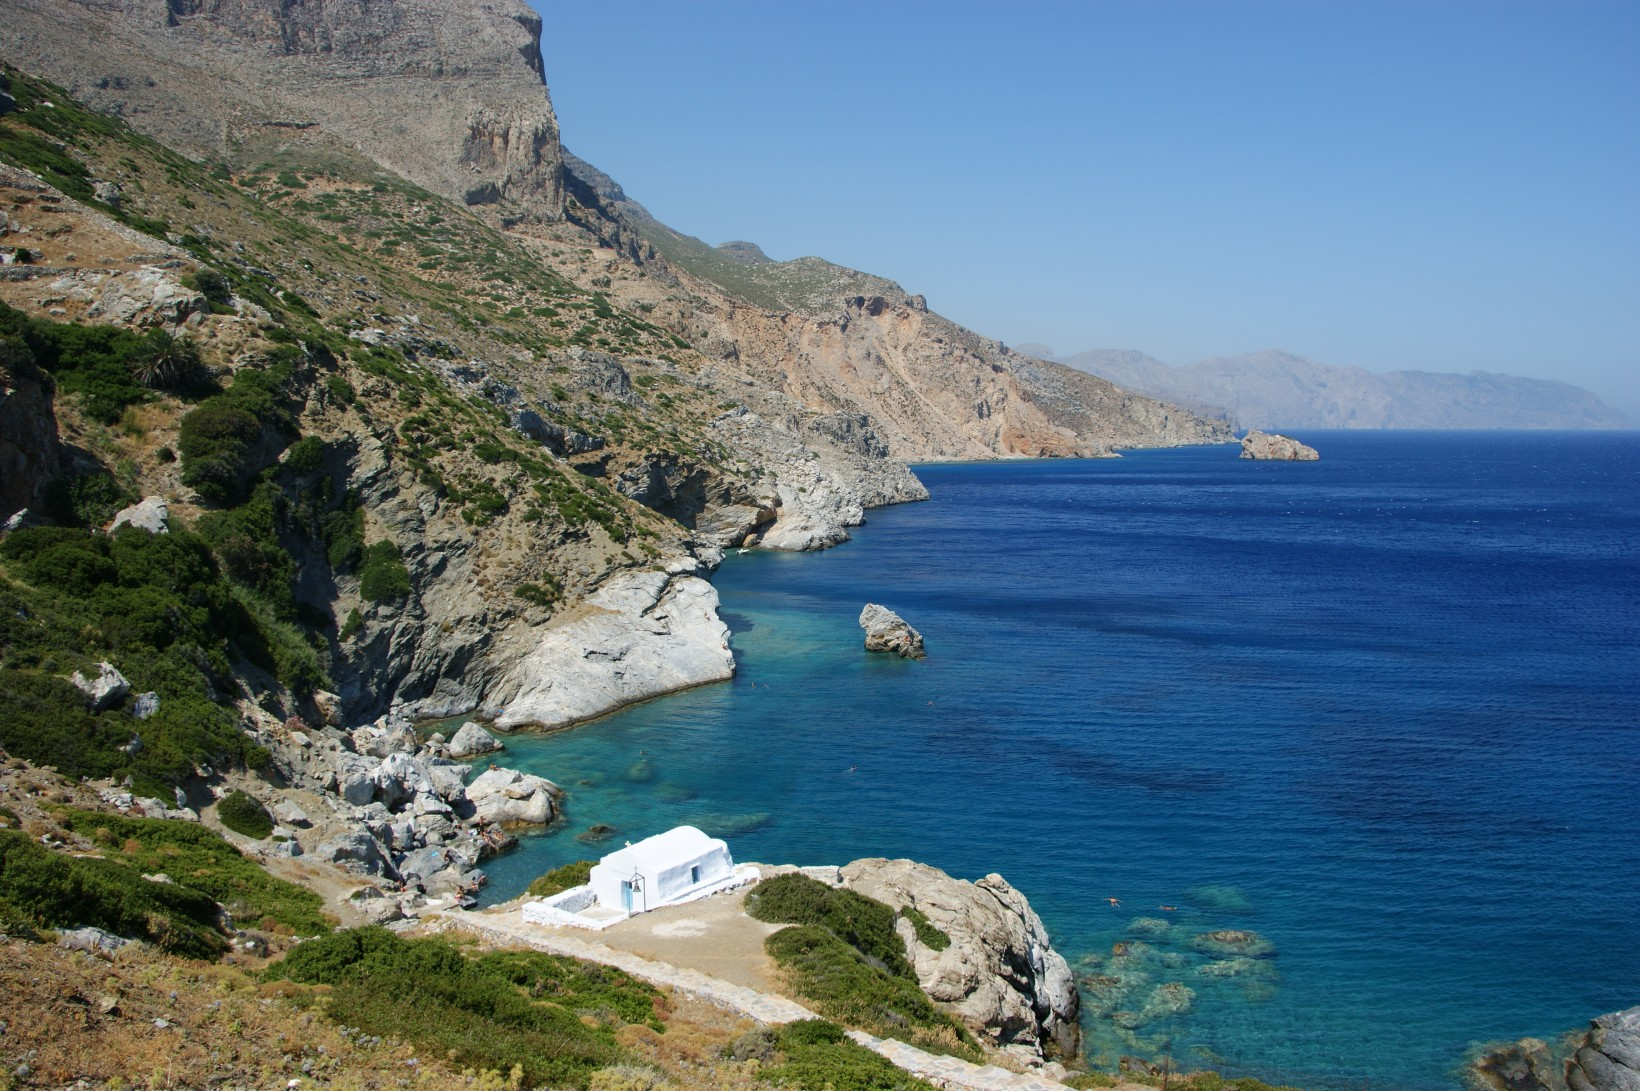 Amorgos Greece  city images : Amorgos Mysterious Greece The Insider's Travel Guide